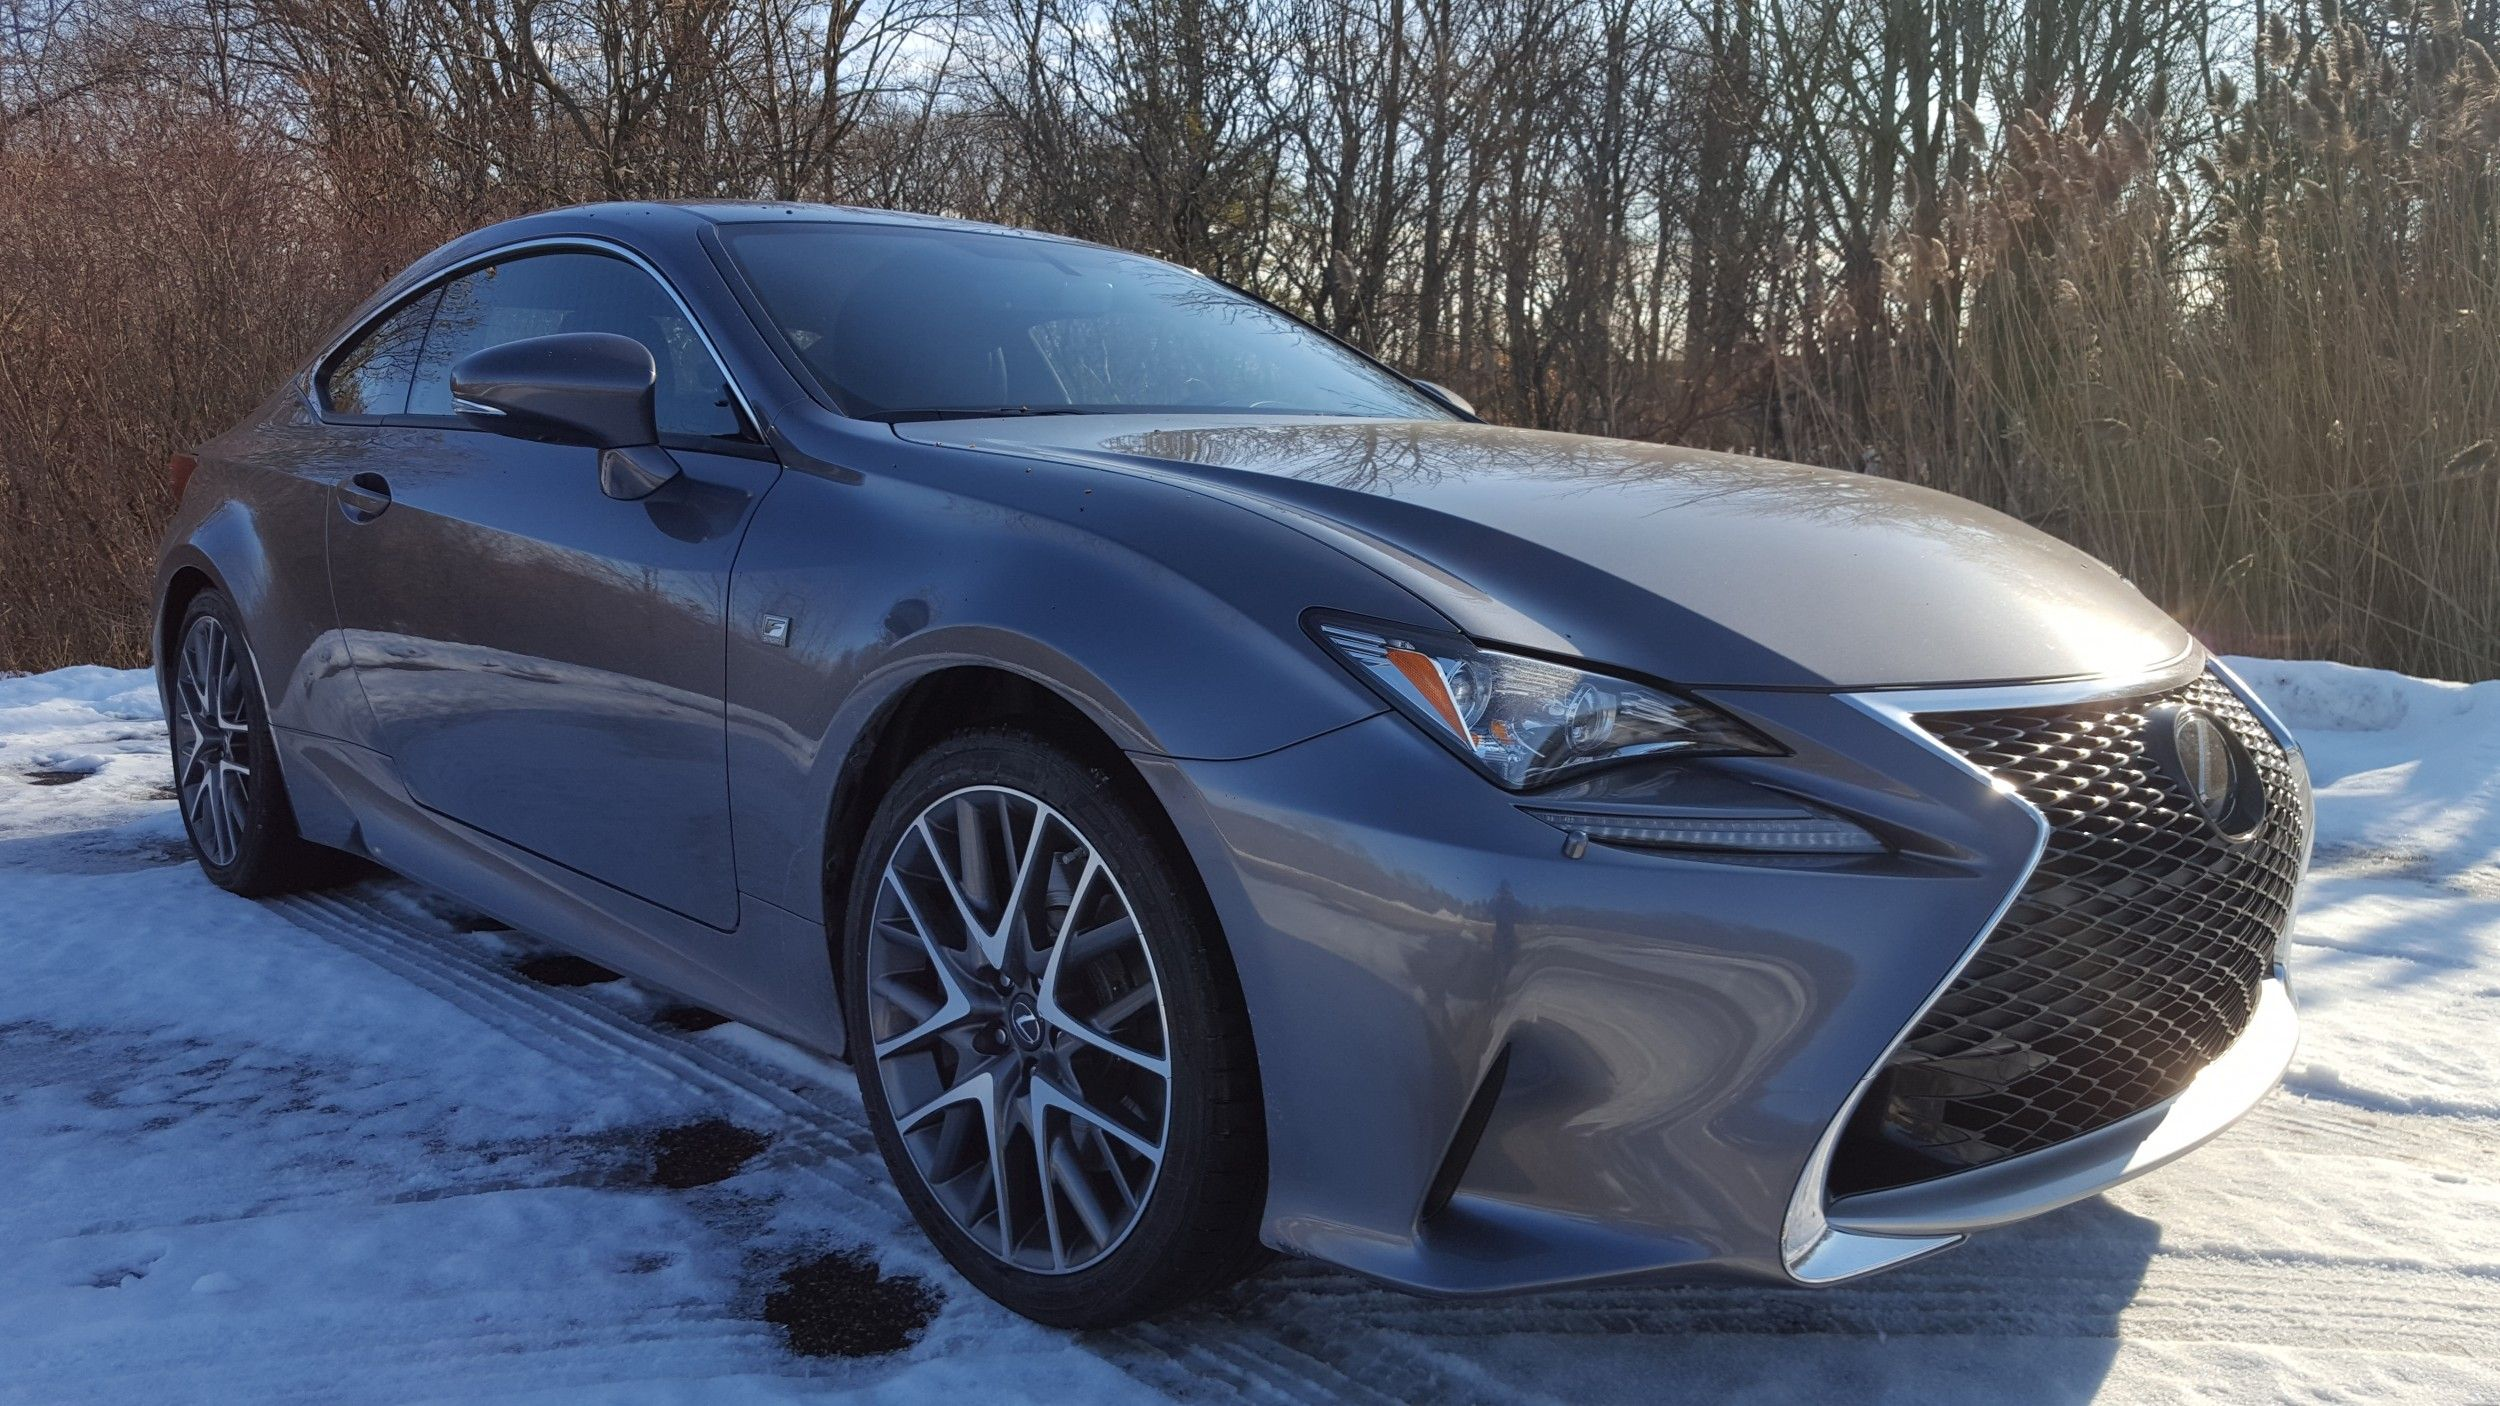 Road Test Review 2017 Lexus Rc 350 F Sport Rwd By Carl Malek Latest News Road Test Lexus Test Review